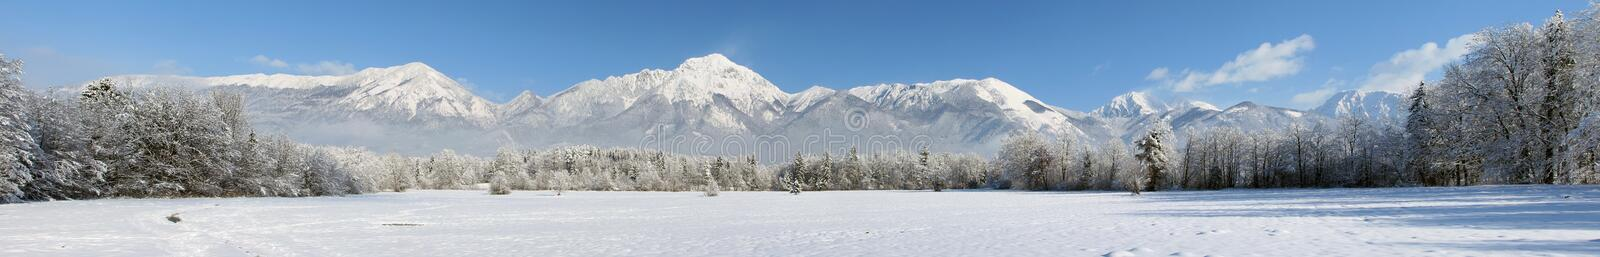 Winter panorama of forest and mountains royalty free stock images